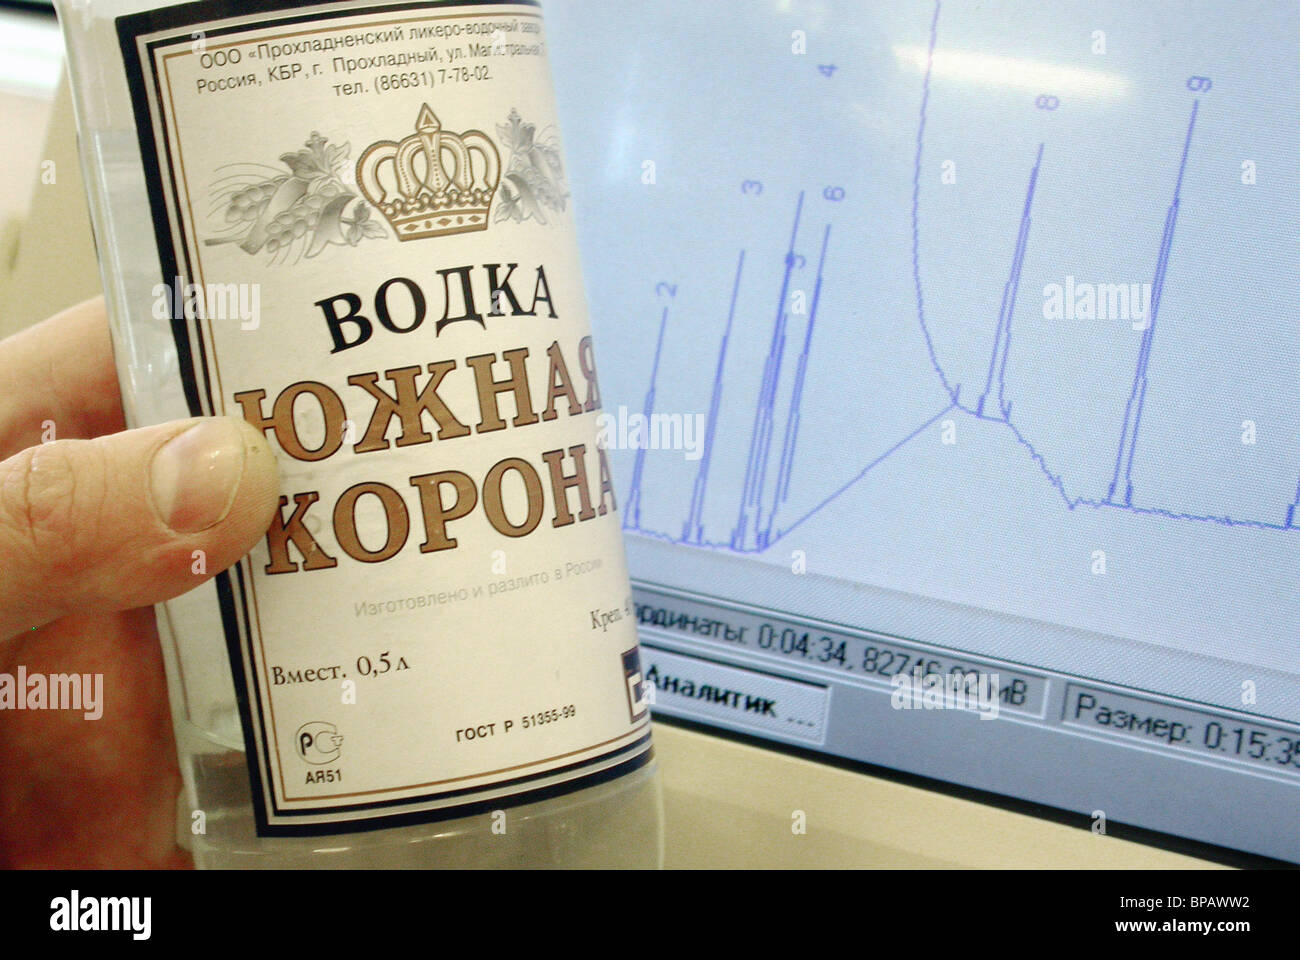 Big batch of counterfeit alcohol drinks withdrawn in Chelyabinsk - Stock Image